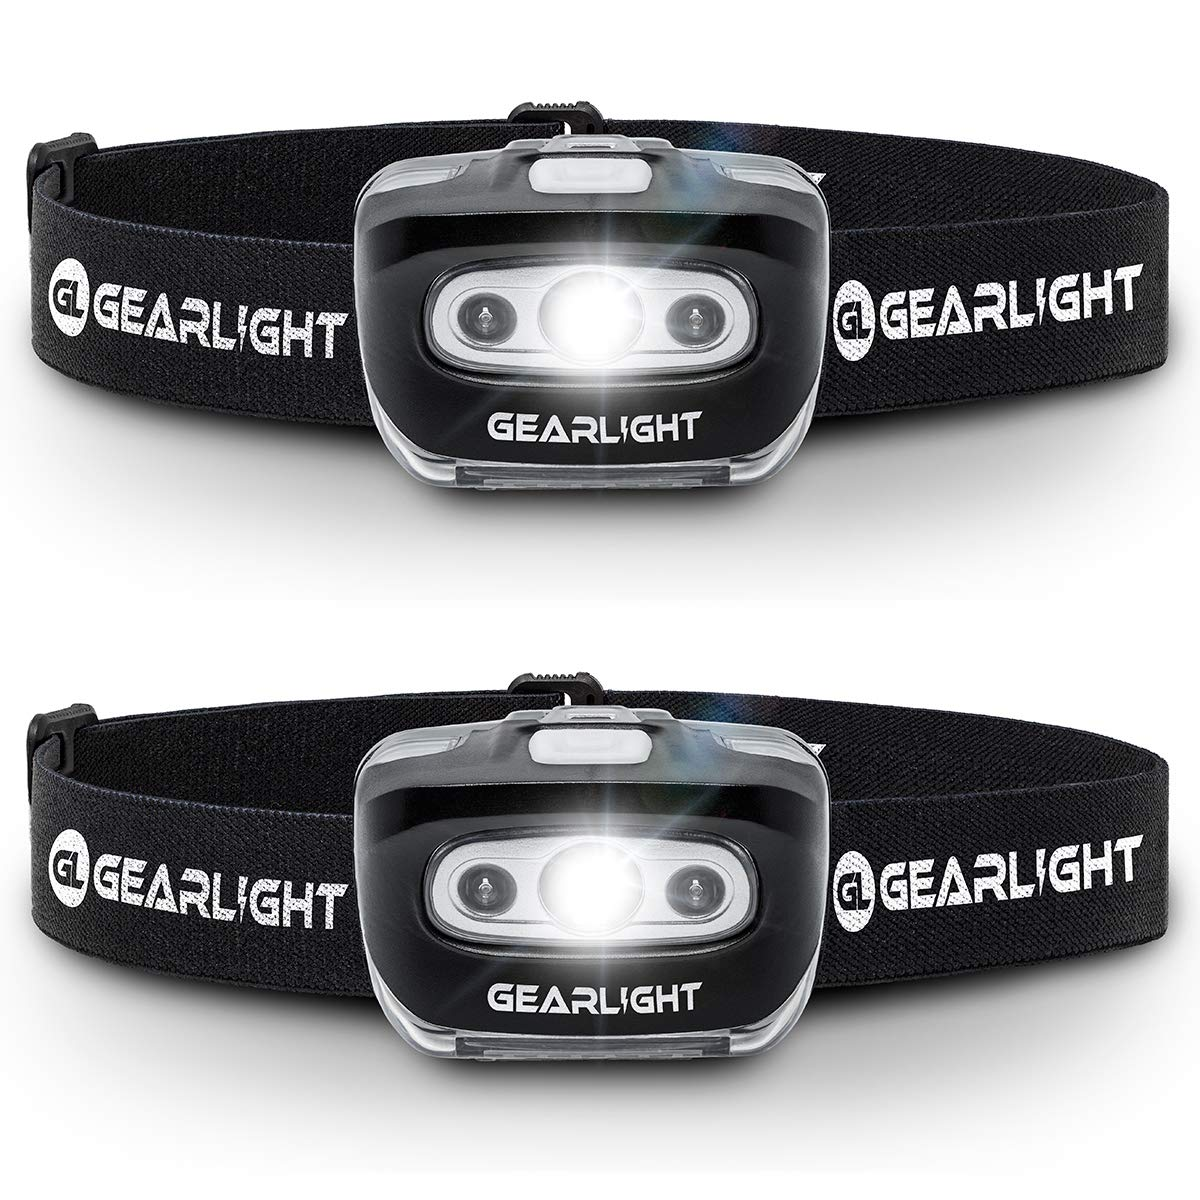 GearLight LED Headlamp Flashlight S500 [2 PACK] - Running, Camping, and Outdoor Headlamps - Best Head Lamp with Red Safety Light for Adults and Kids by GearLight